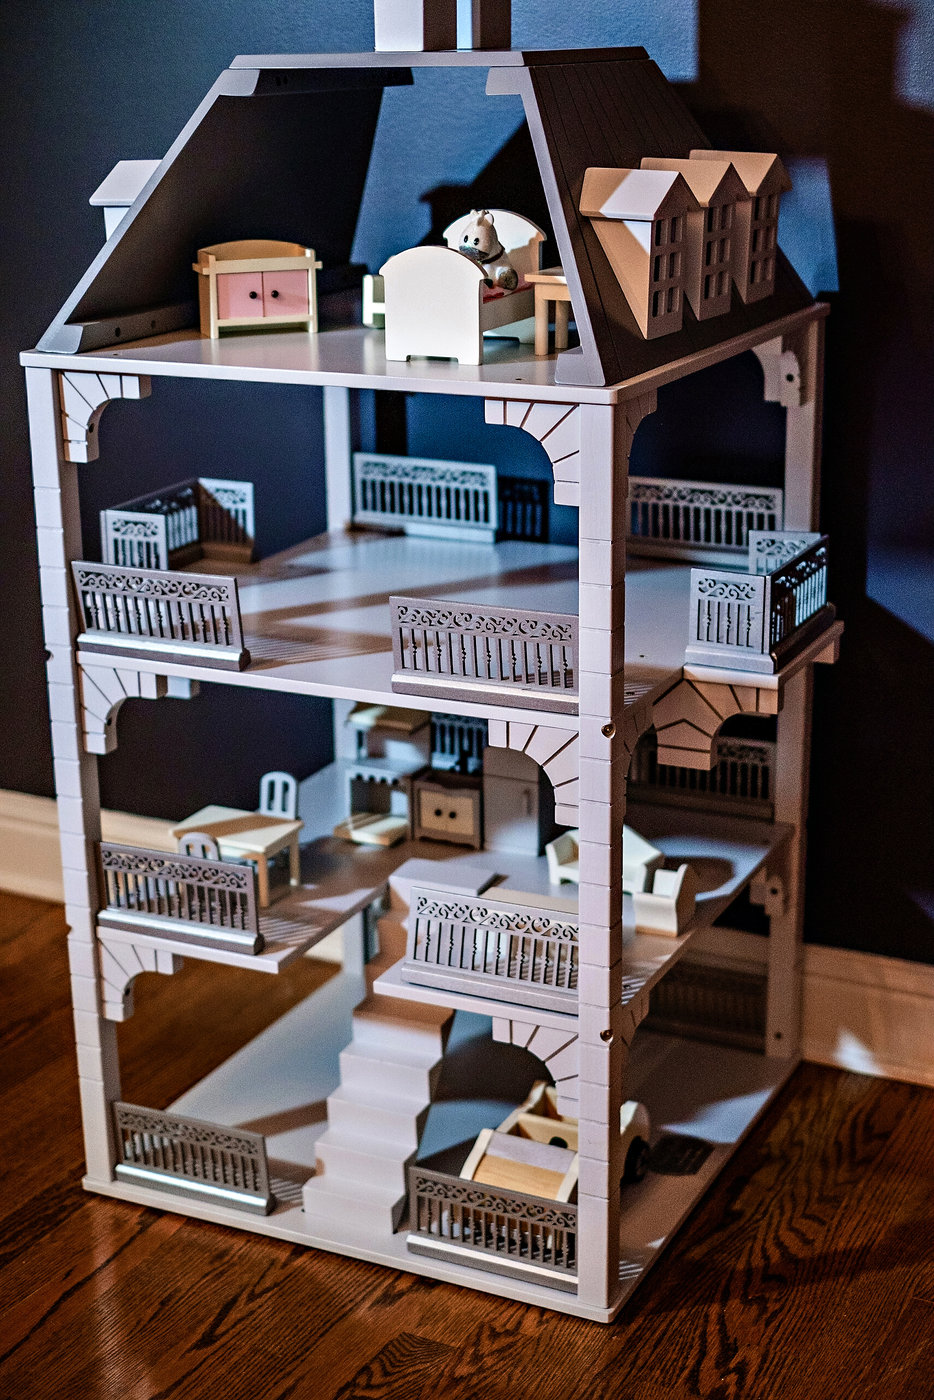 Doll House | Meg Basinger | Little Girl Room Decor featured by popular Atlanta life and style blogger Happily Hughes